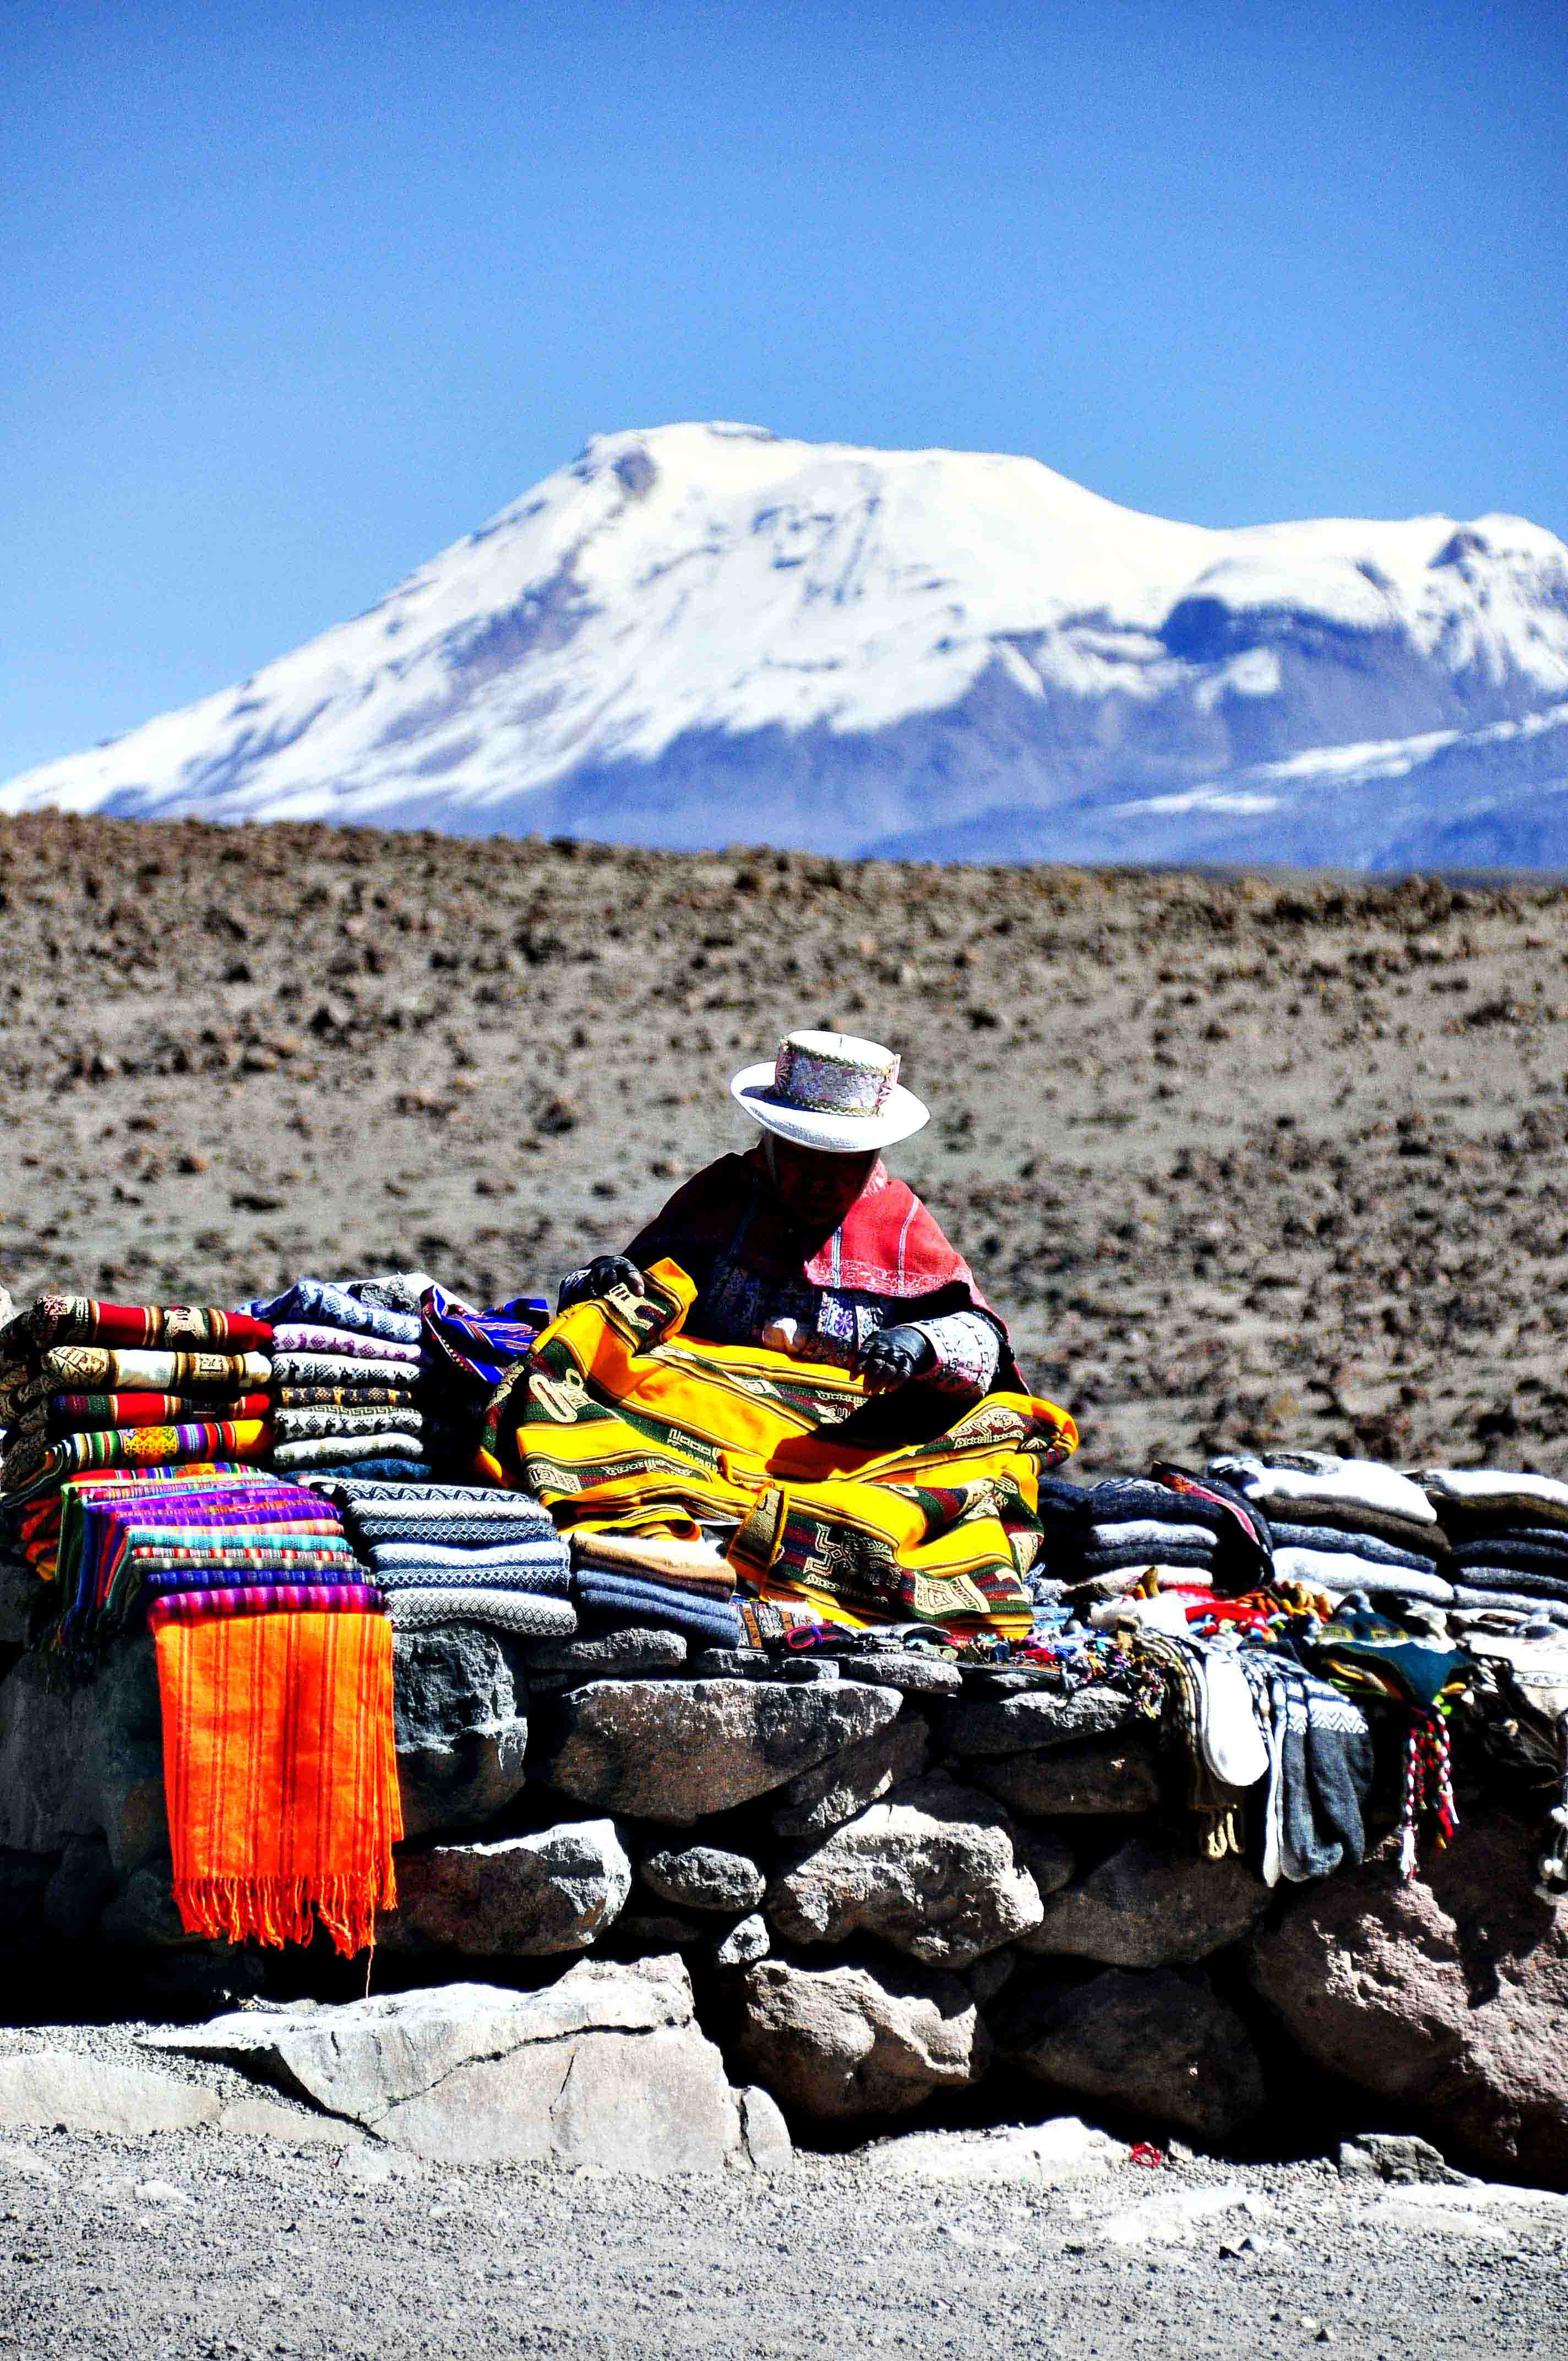 Lady selling warm clothes